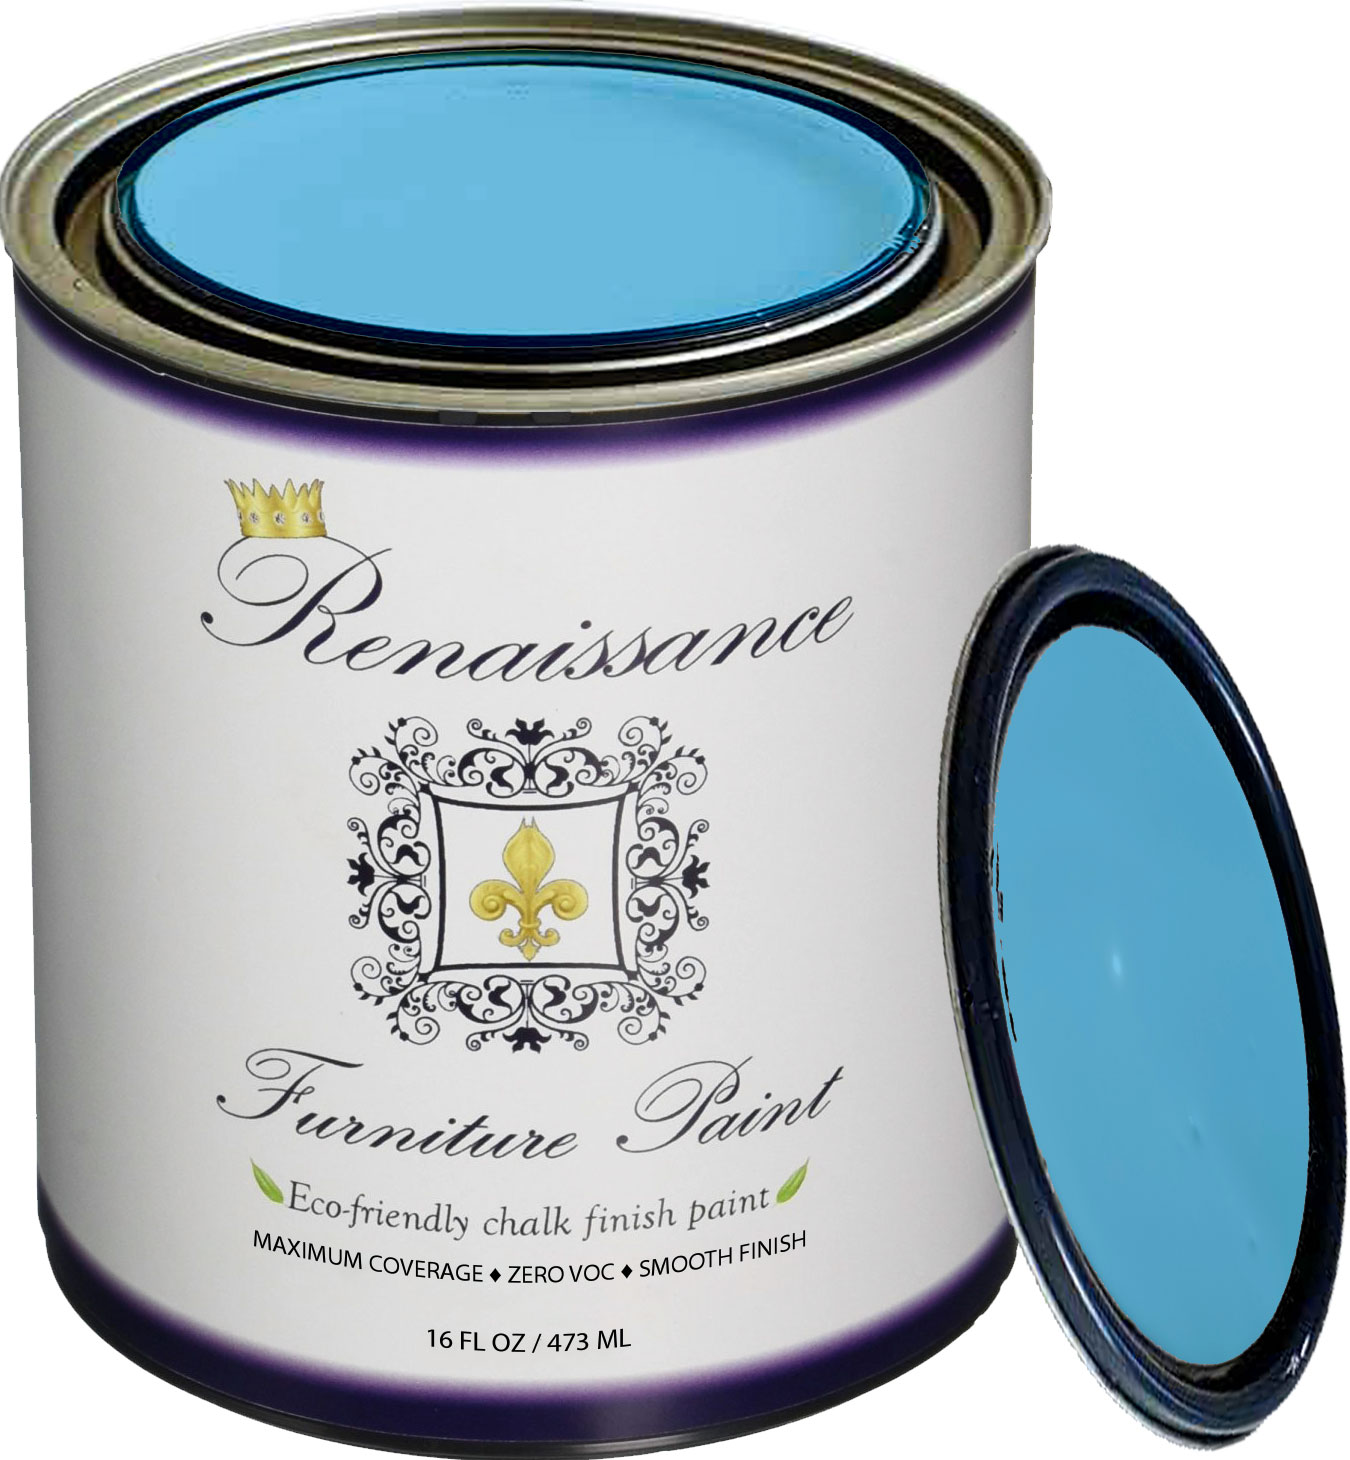 Renaissance Chalk Finish Paint - Celestial Blue Pint (16oz) - Chalk Furniture & Cabinet Paint - Non Toxic, Eco-Friendly, Superior Coverage